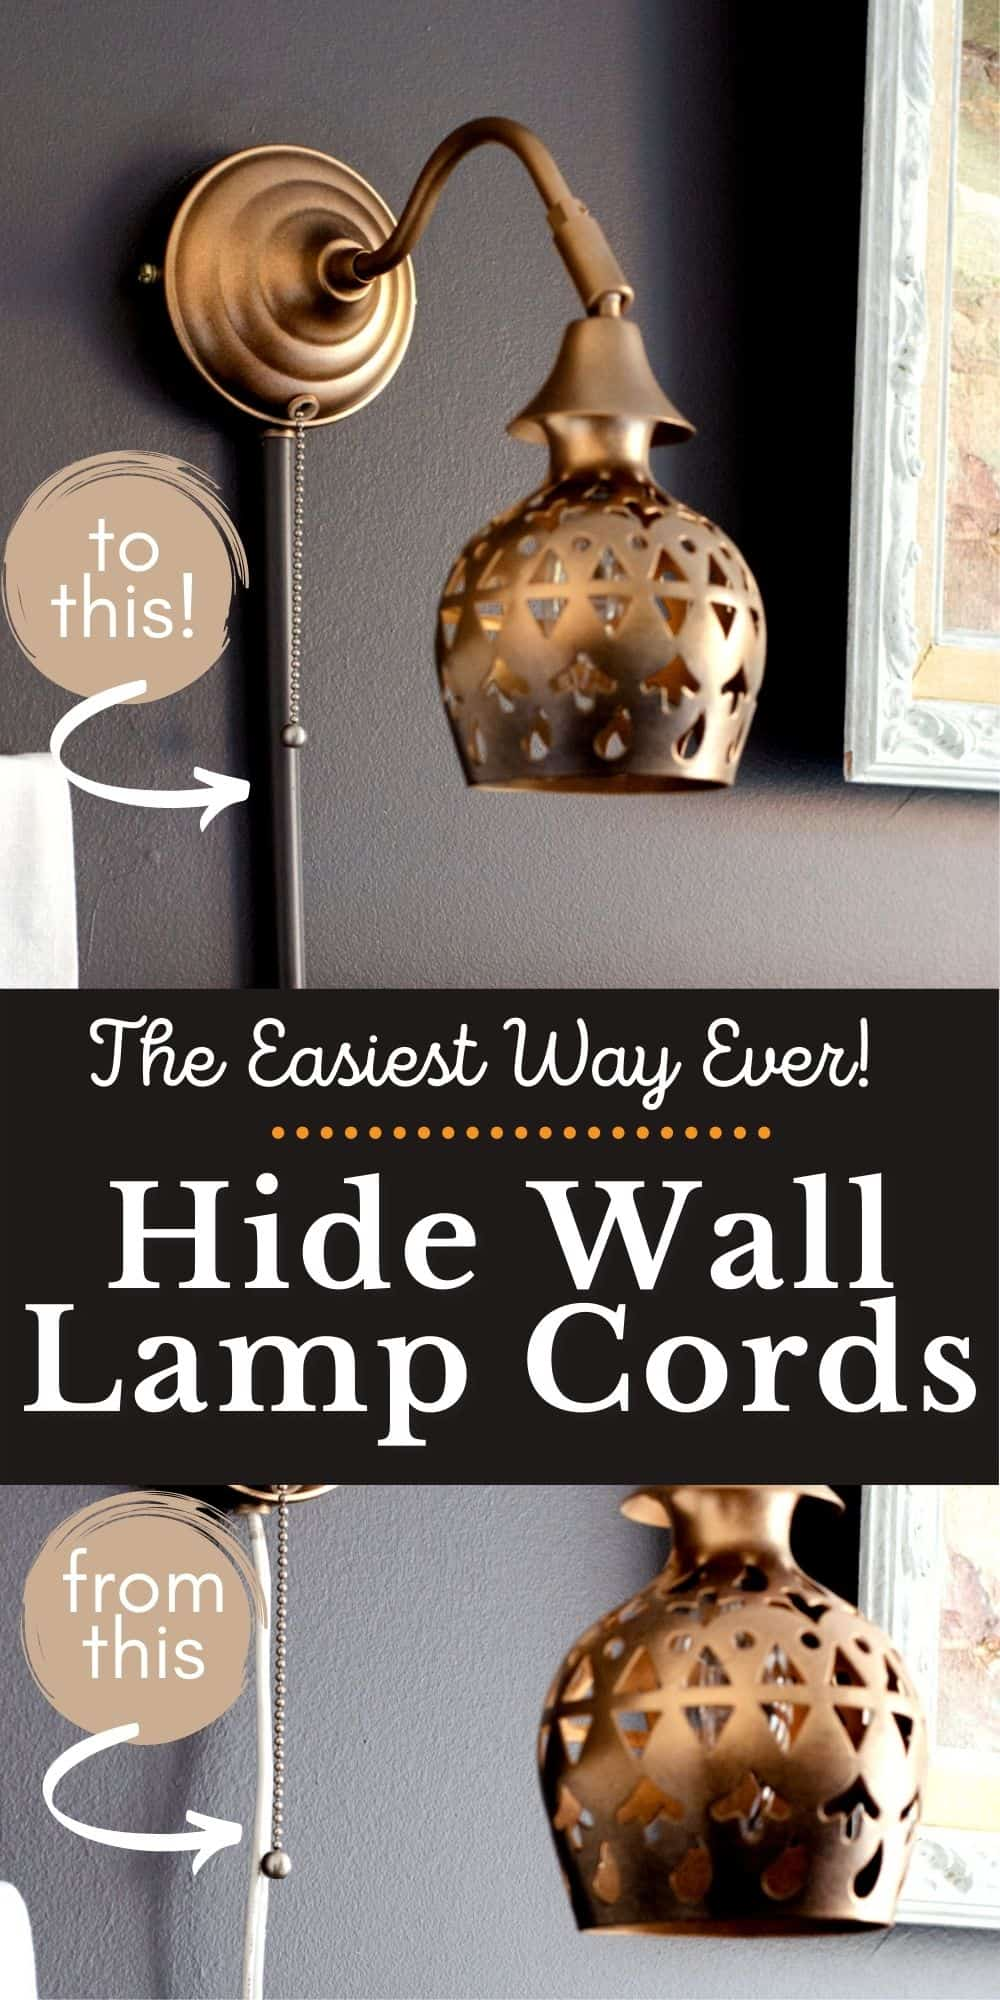 How to hide wall lamp cords - a collage of the before and after pictures.